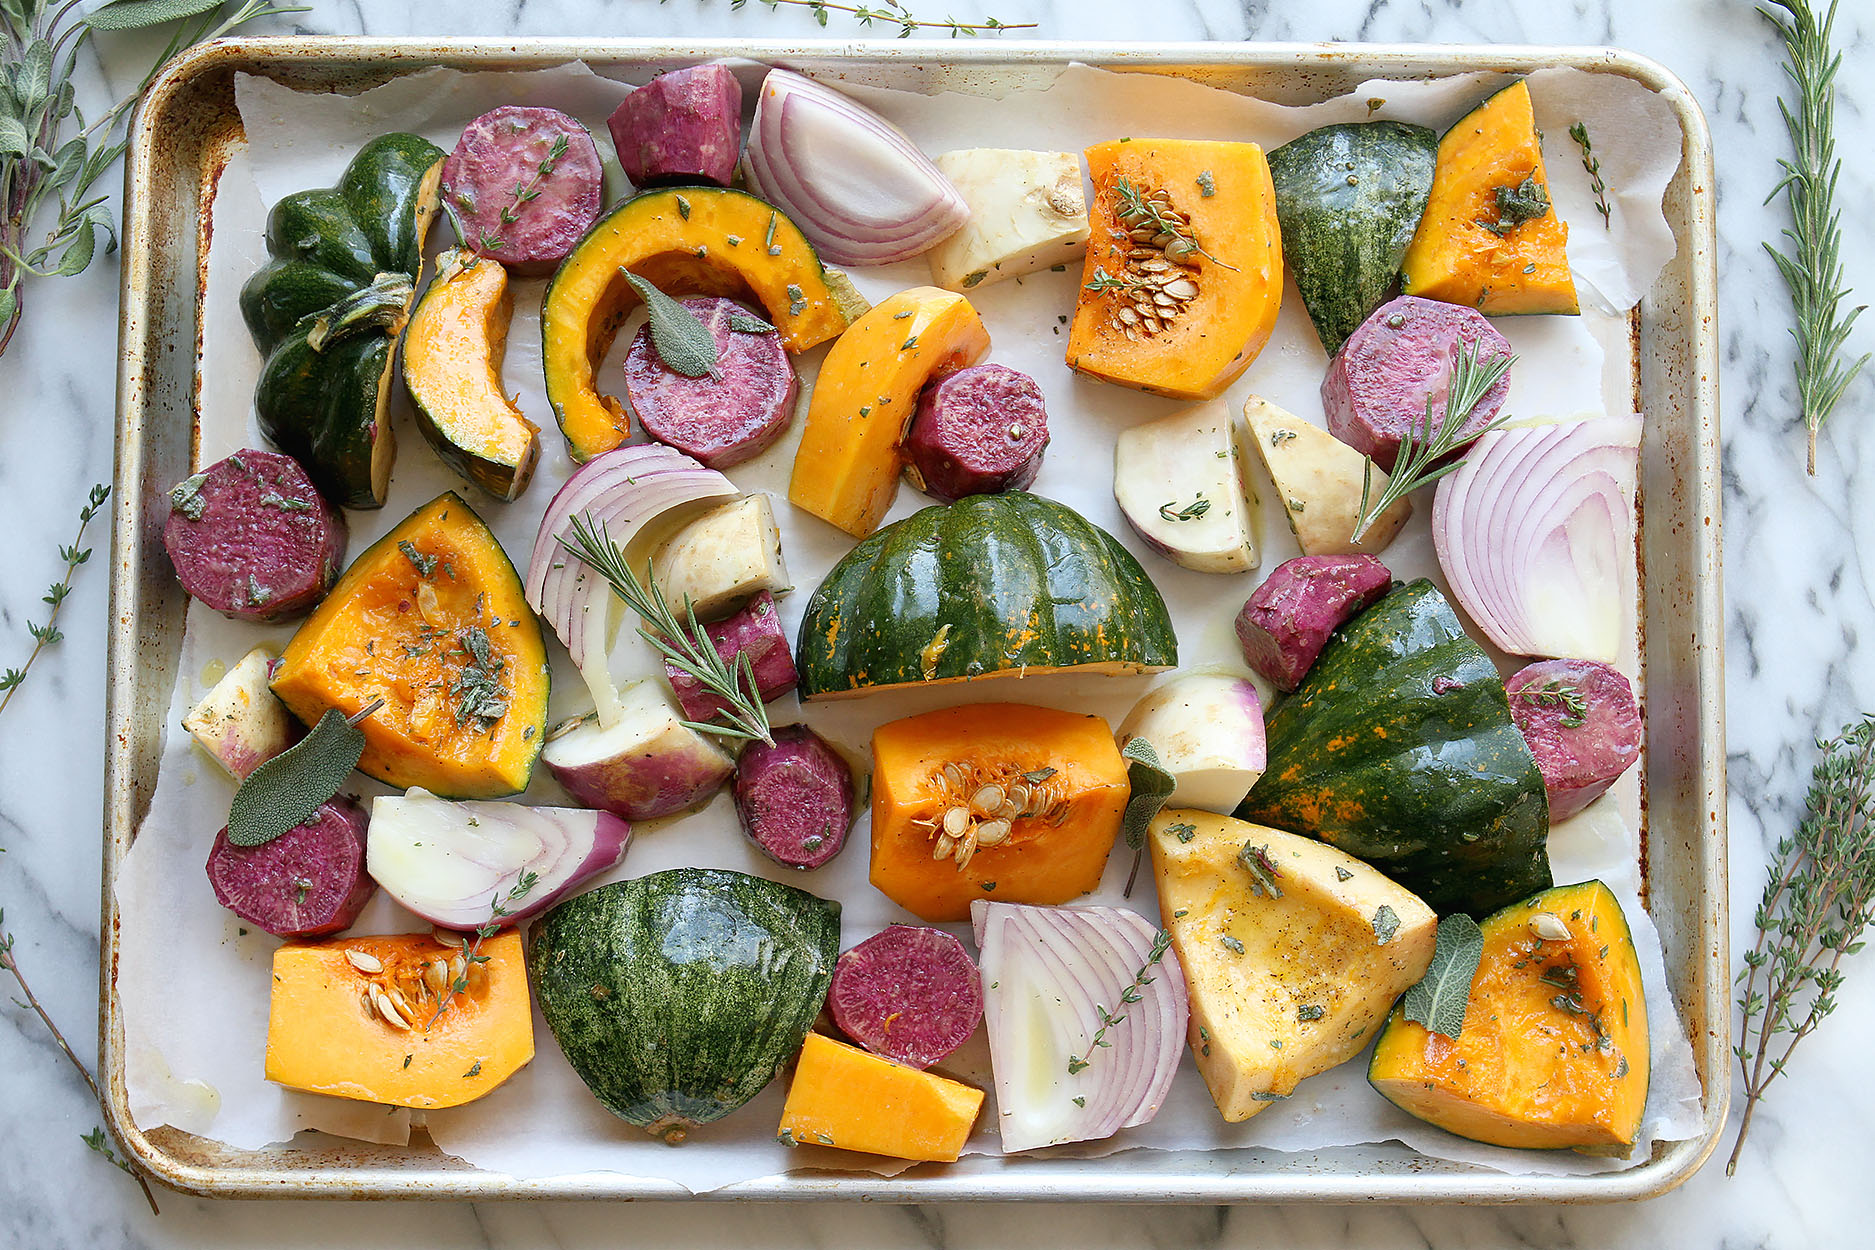 A sheet pan lined with parchment paper, full of squash, red onions beets, and turnips. Thyme, rosemary and sage sprinkled over the veggies